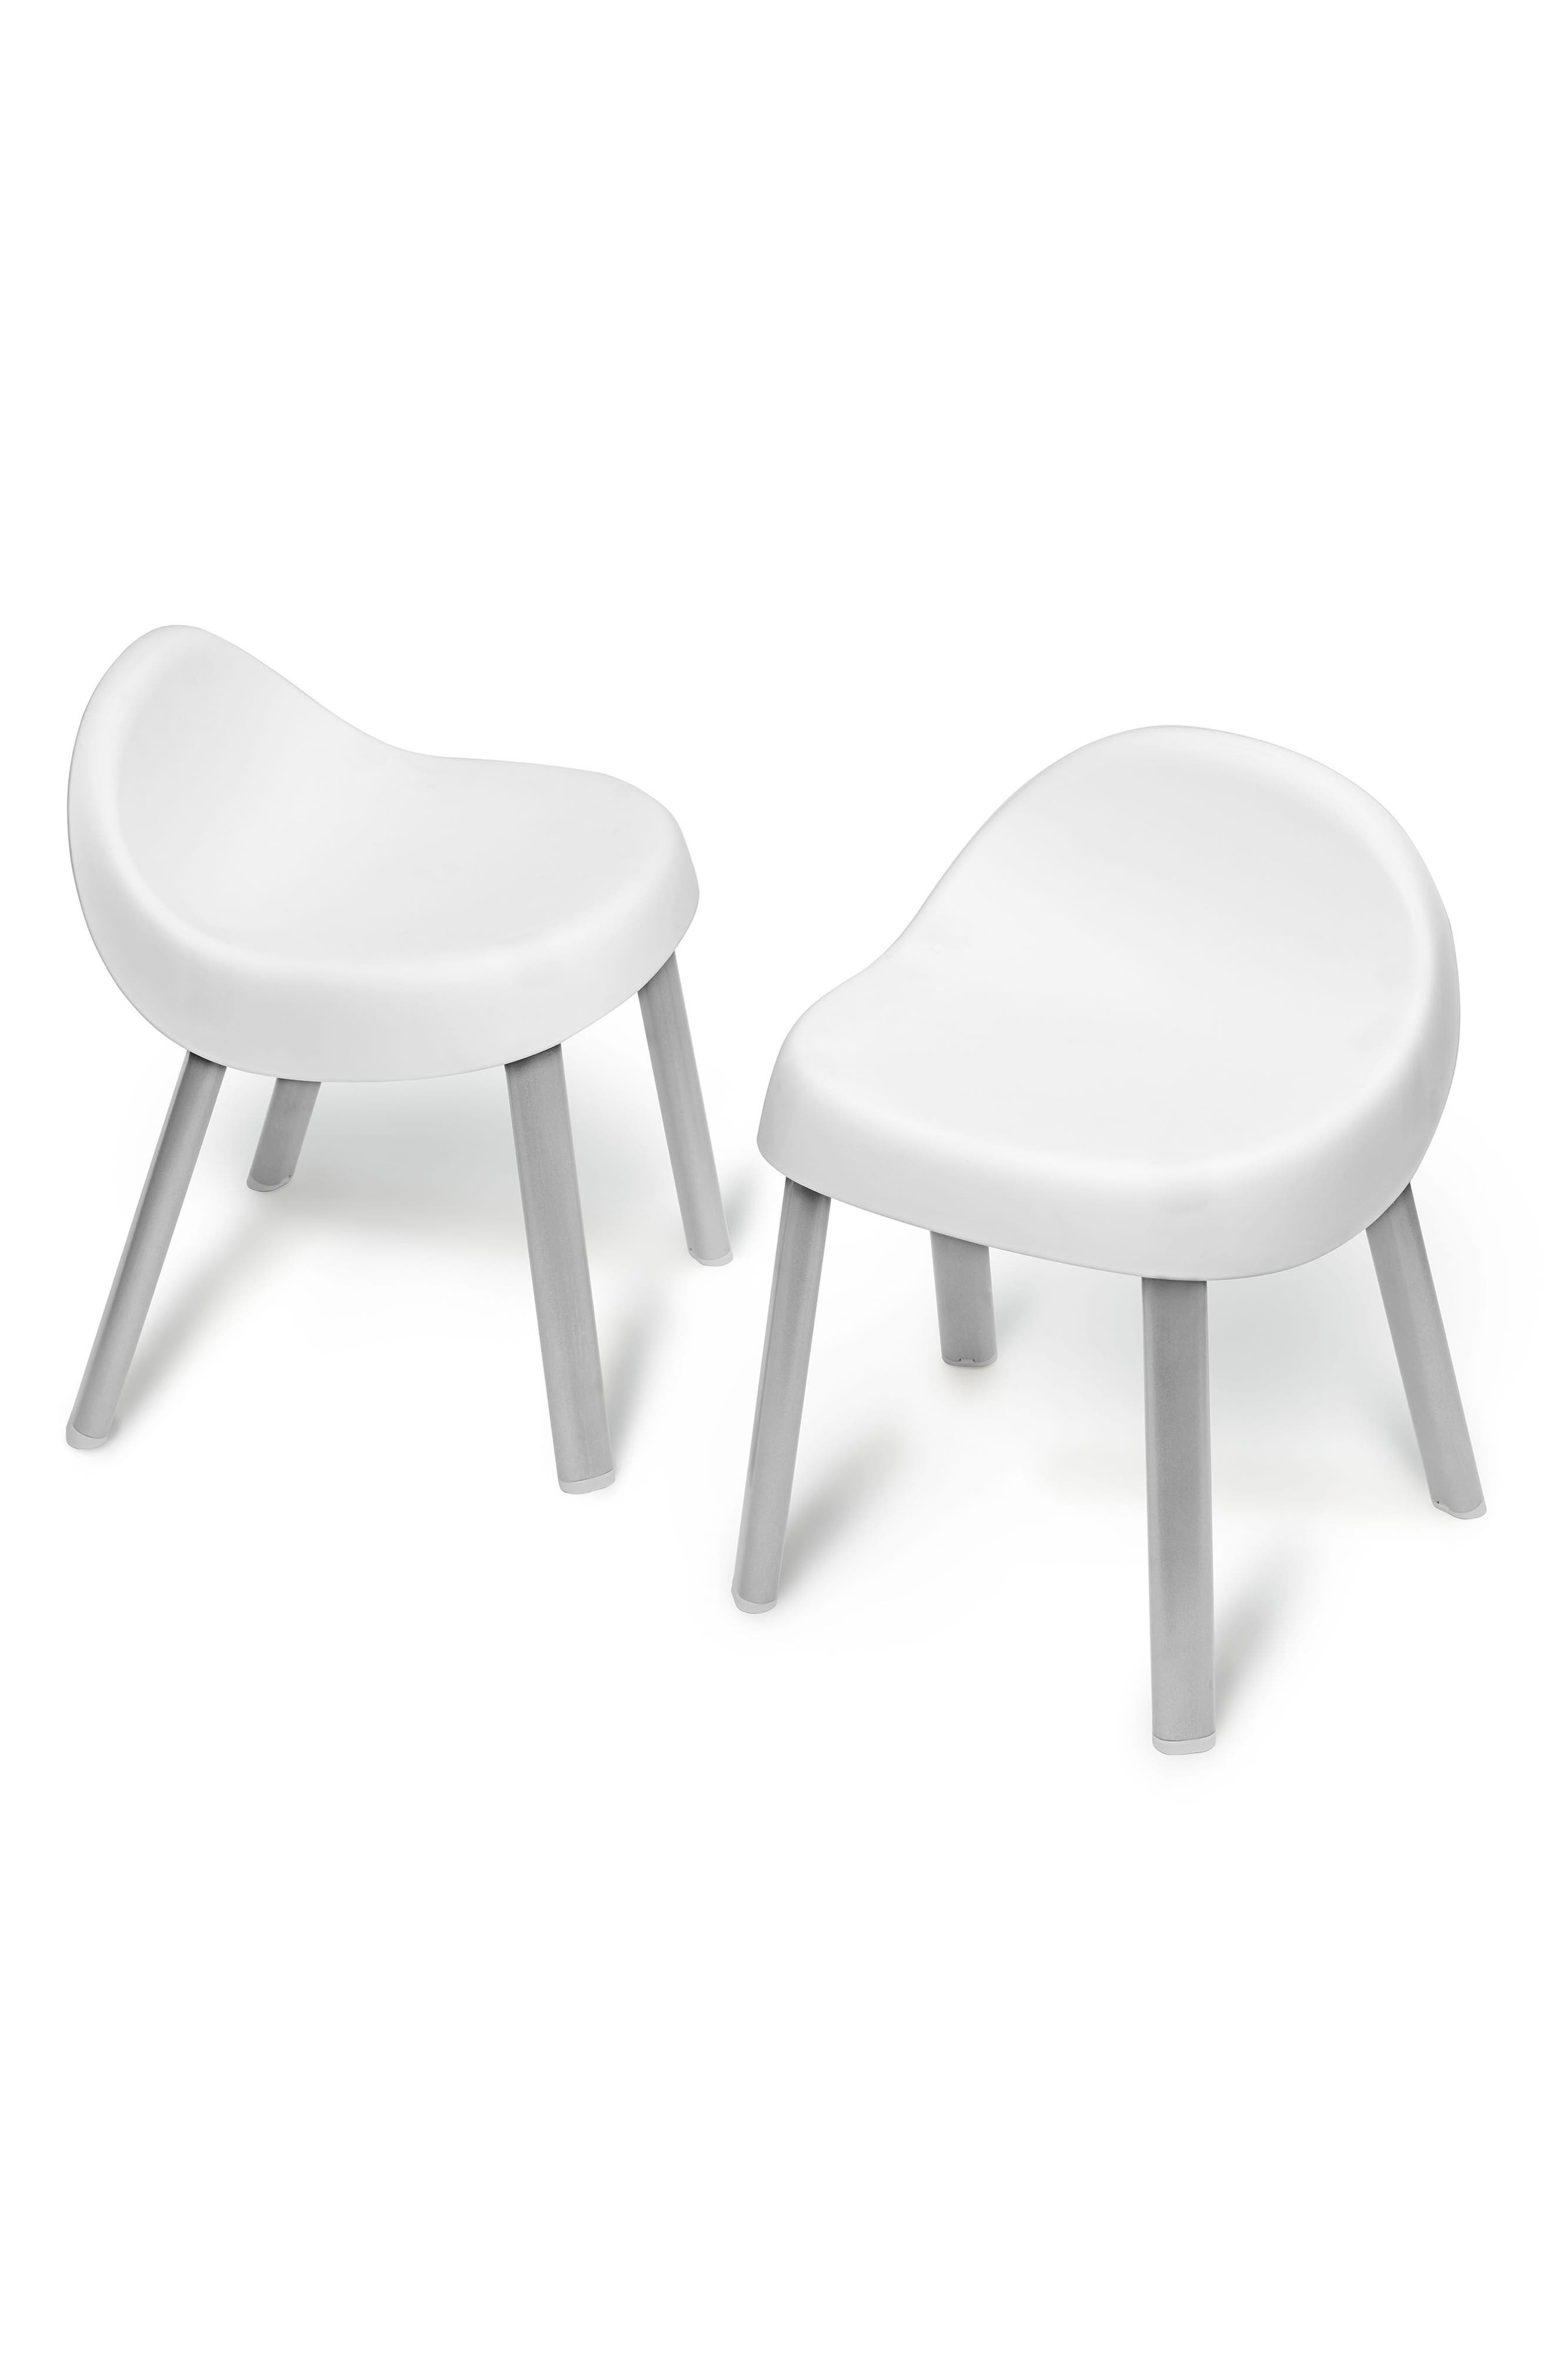 Explore & More Kids' Chairs,                             Main thumbnail 1, color,                             White